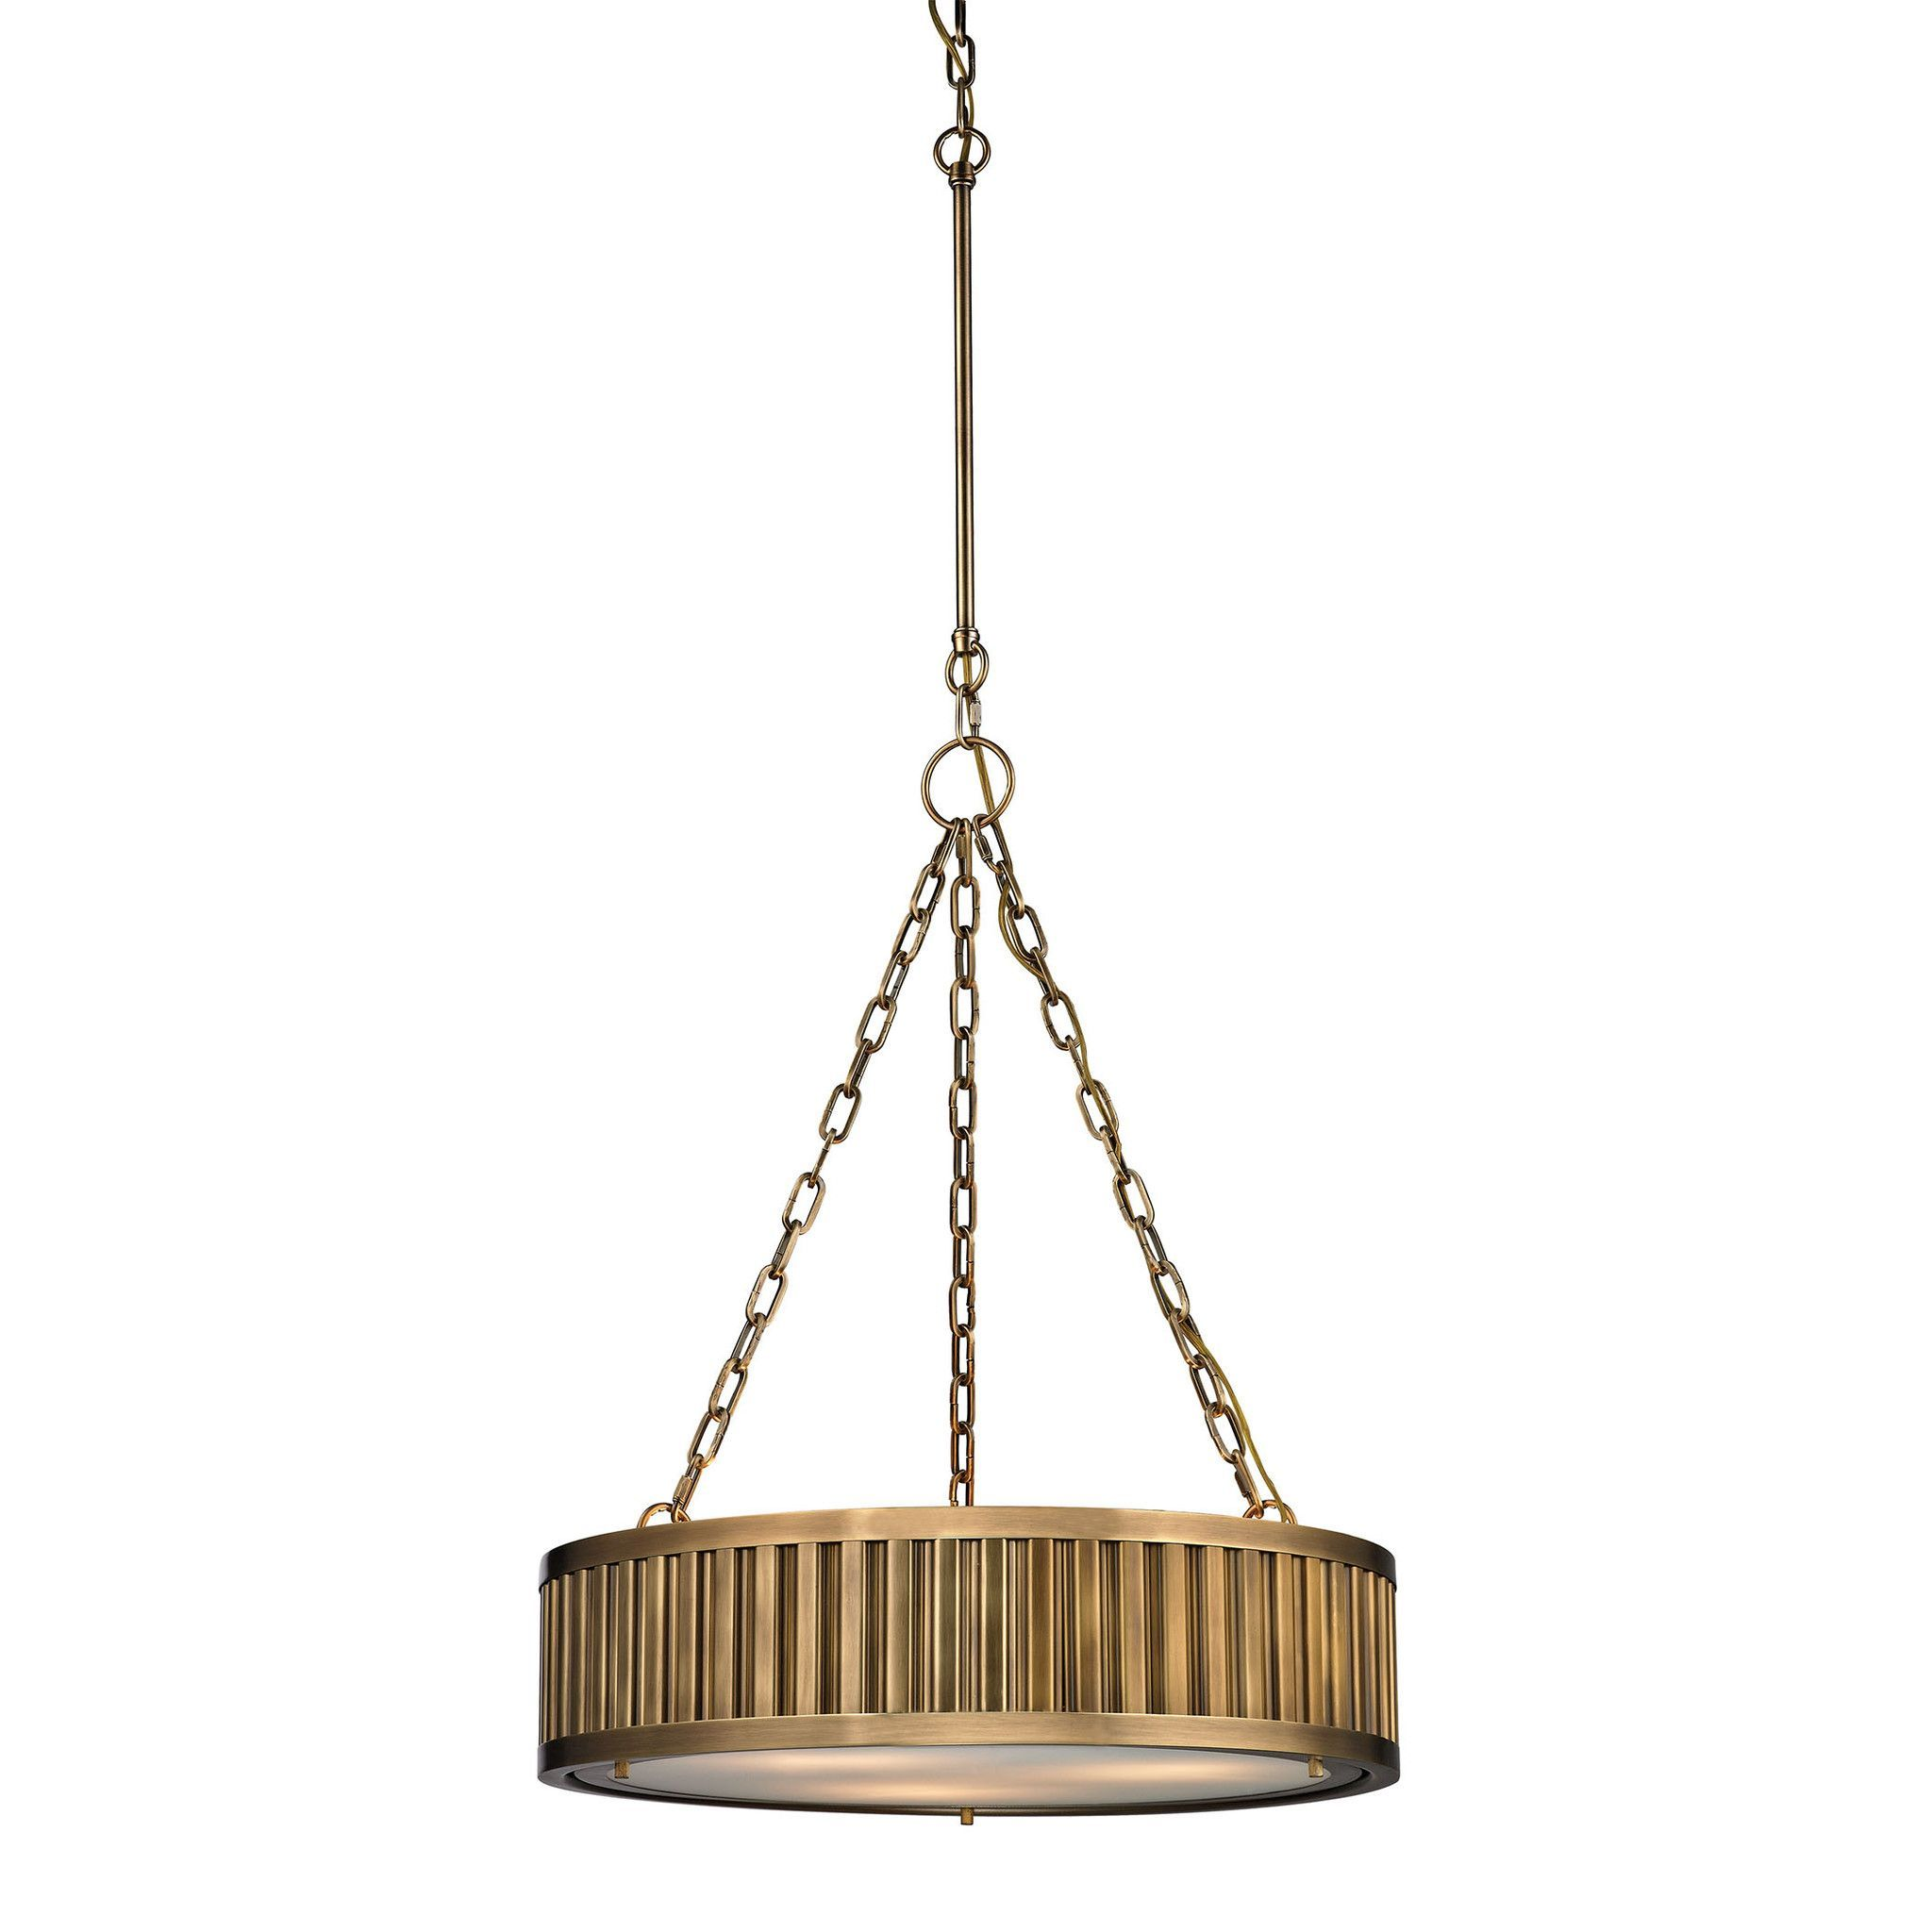 Linden manor light pendant in aged brass products pinterest